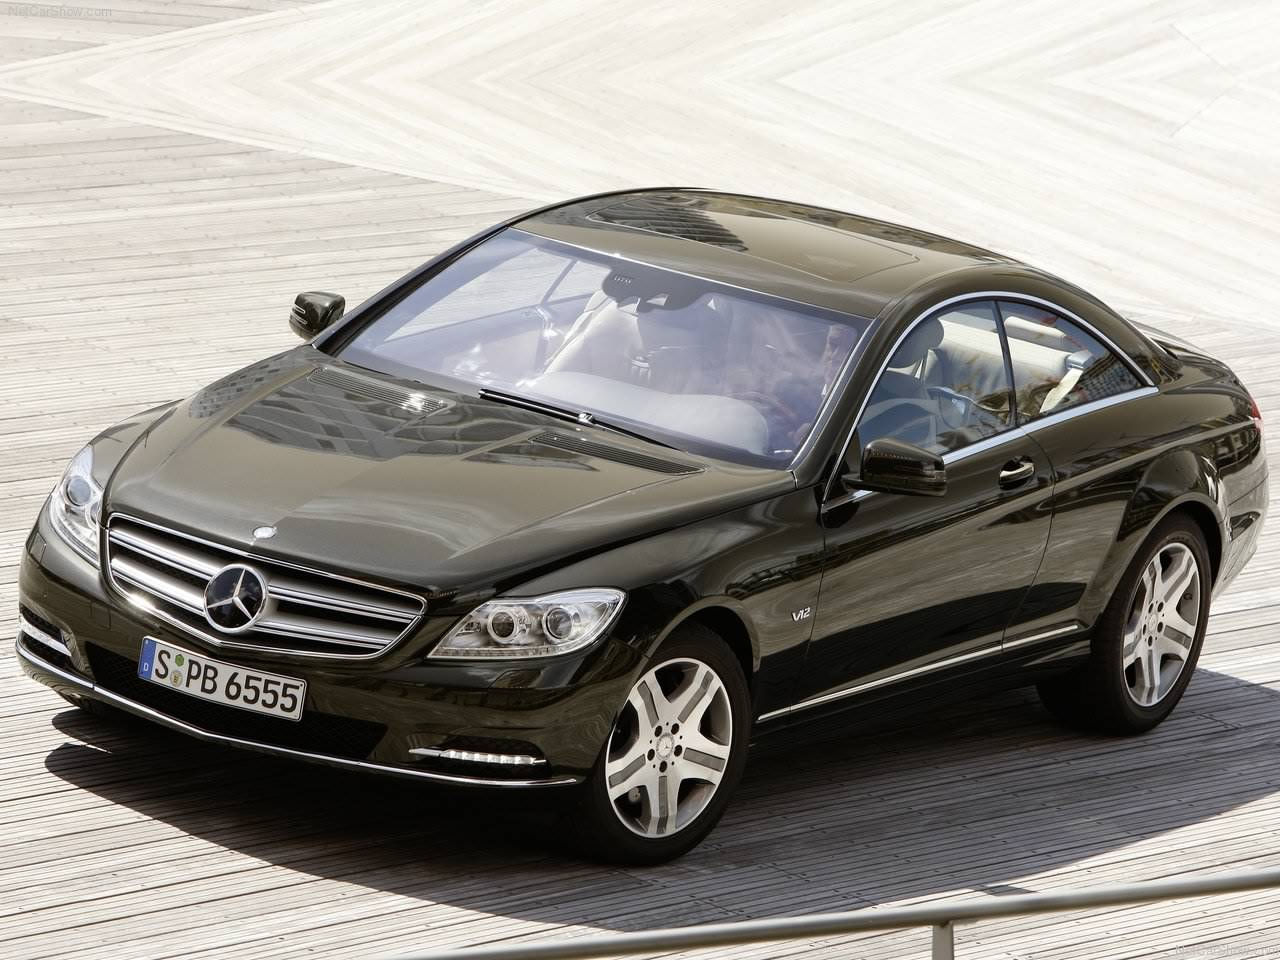 Mercedes benz auto car 2011 mercedes benz cl class for Mercedes benz cars